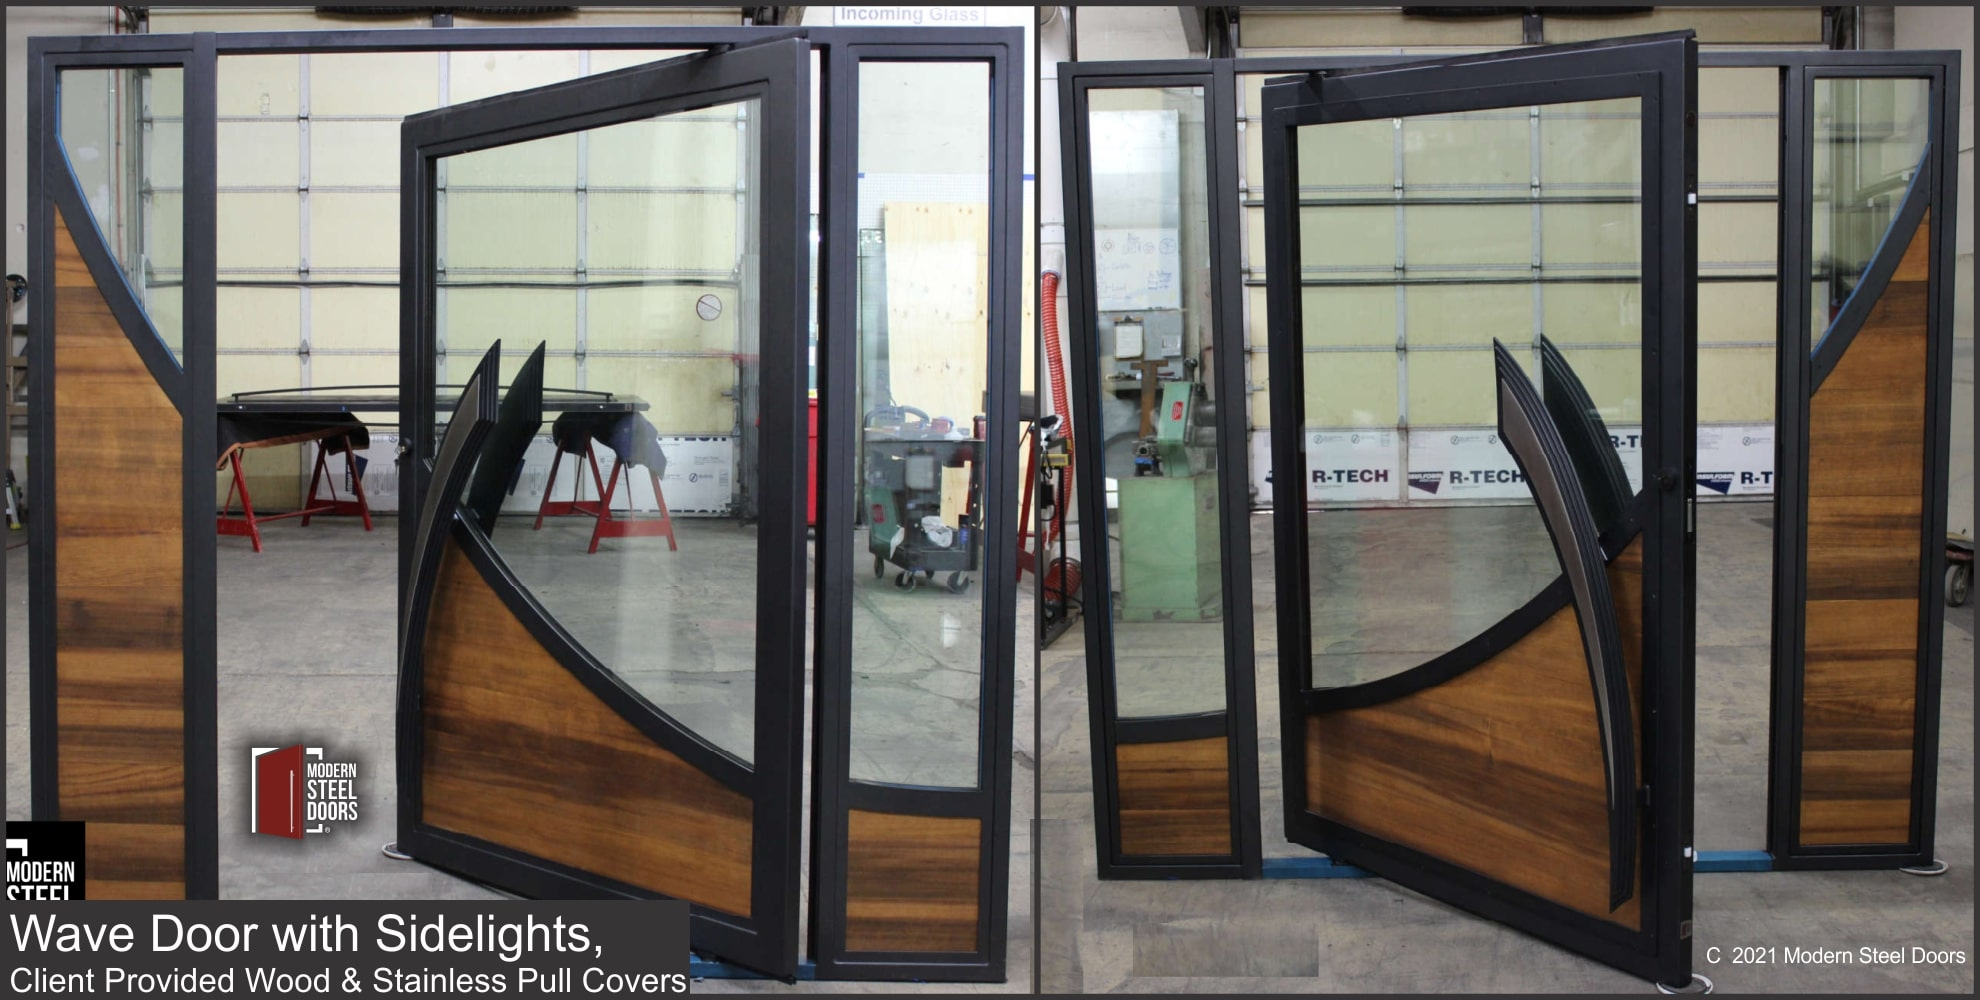 WAVE DOOR WITH SIDELIGHTS CLIENT PROVIDED WOOS AND STAINLESS PULL COVERS